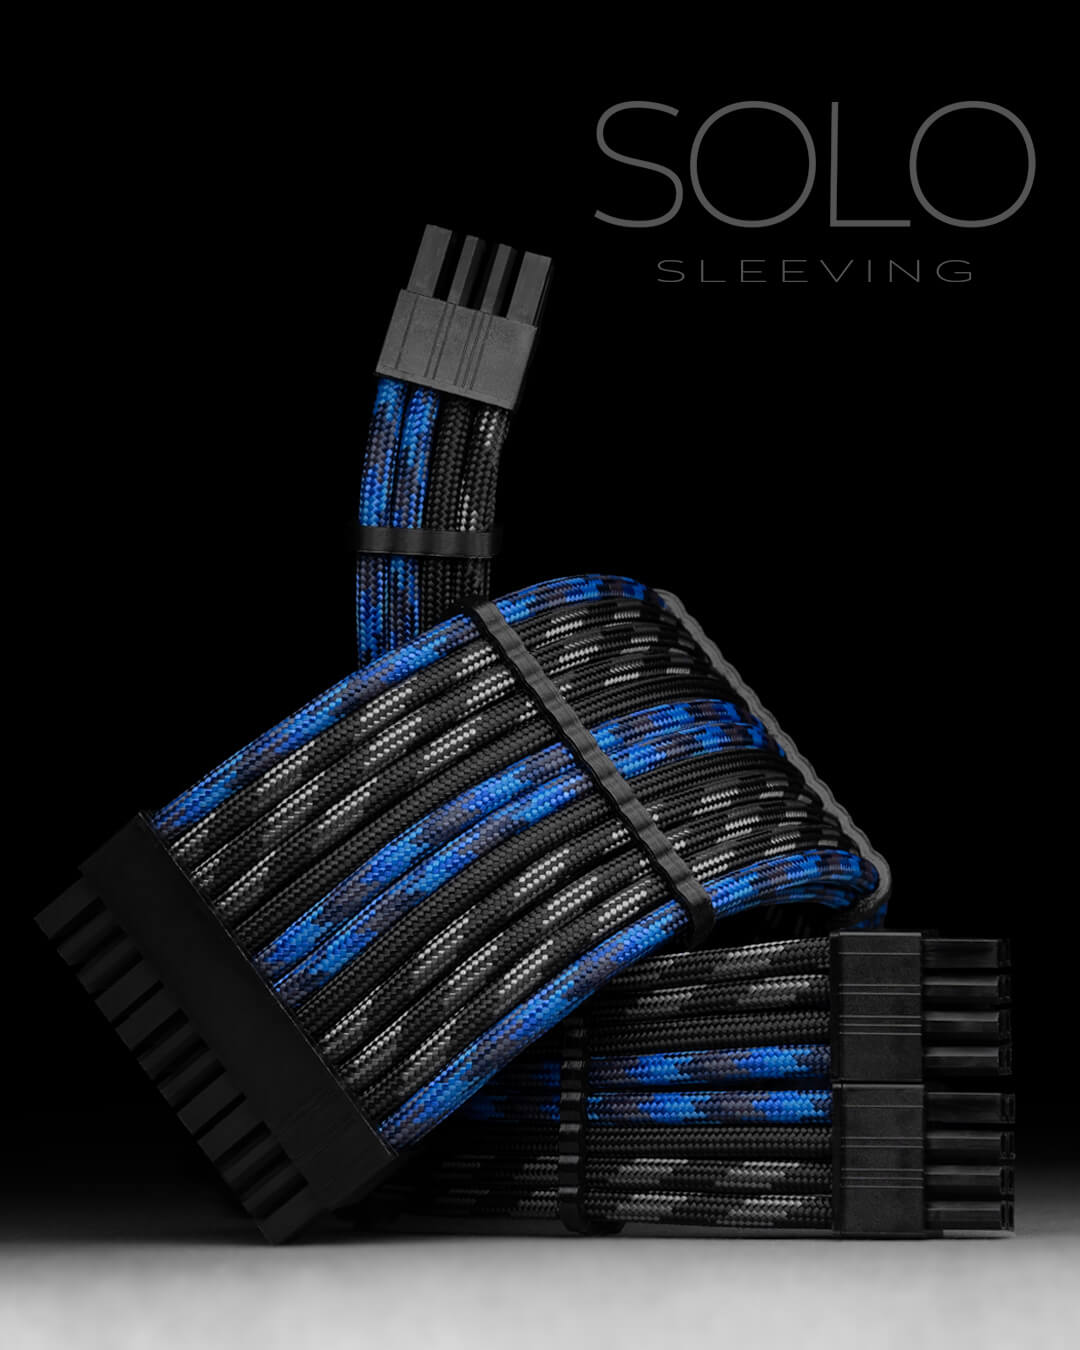 Blue and Black PSU Cables for Custom PC Build